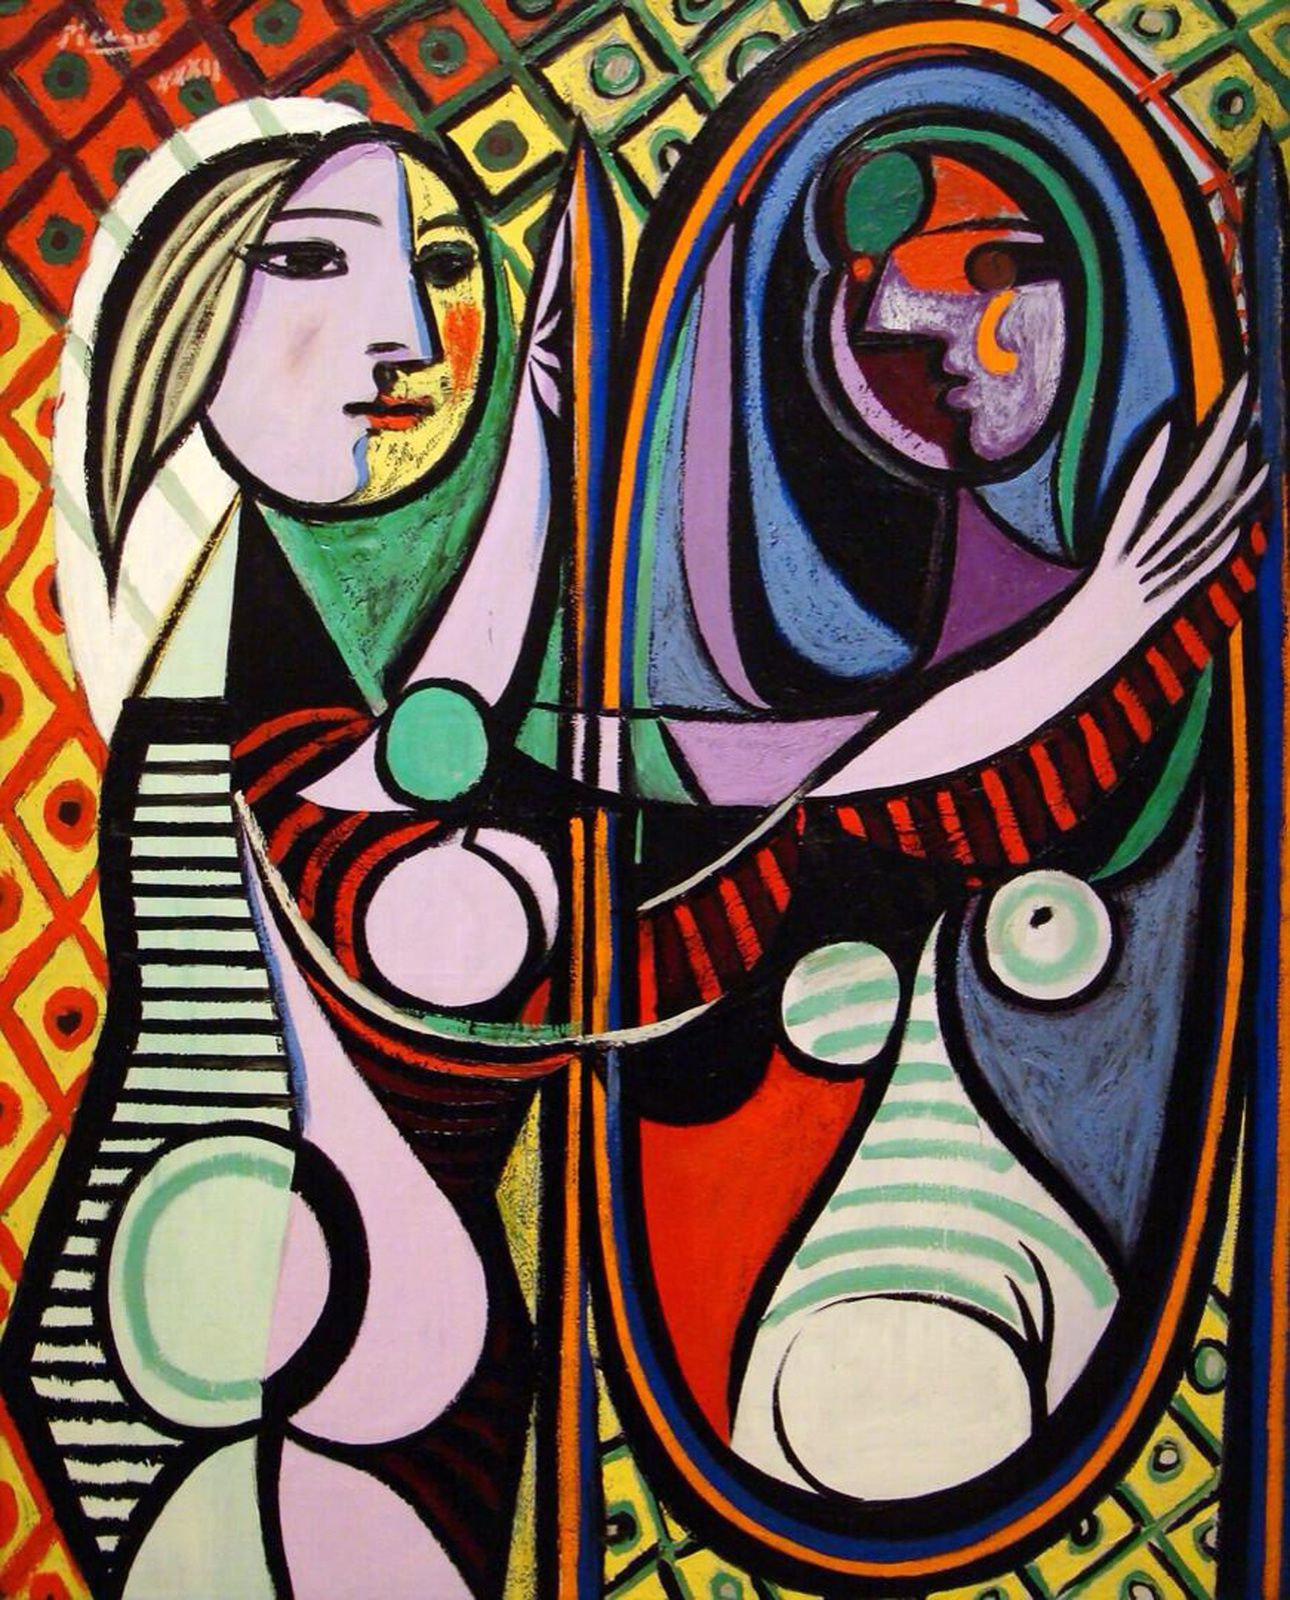 """Femme devant un miroir"", 1932 de Pablo PICASSO - Courtesy High Museum of Art, Atlanta, USA"